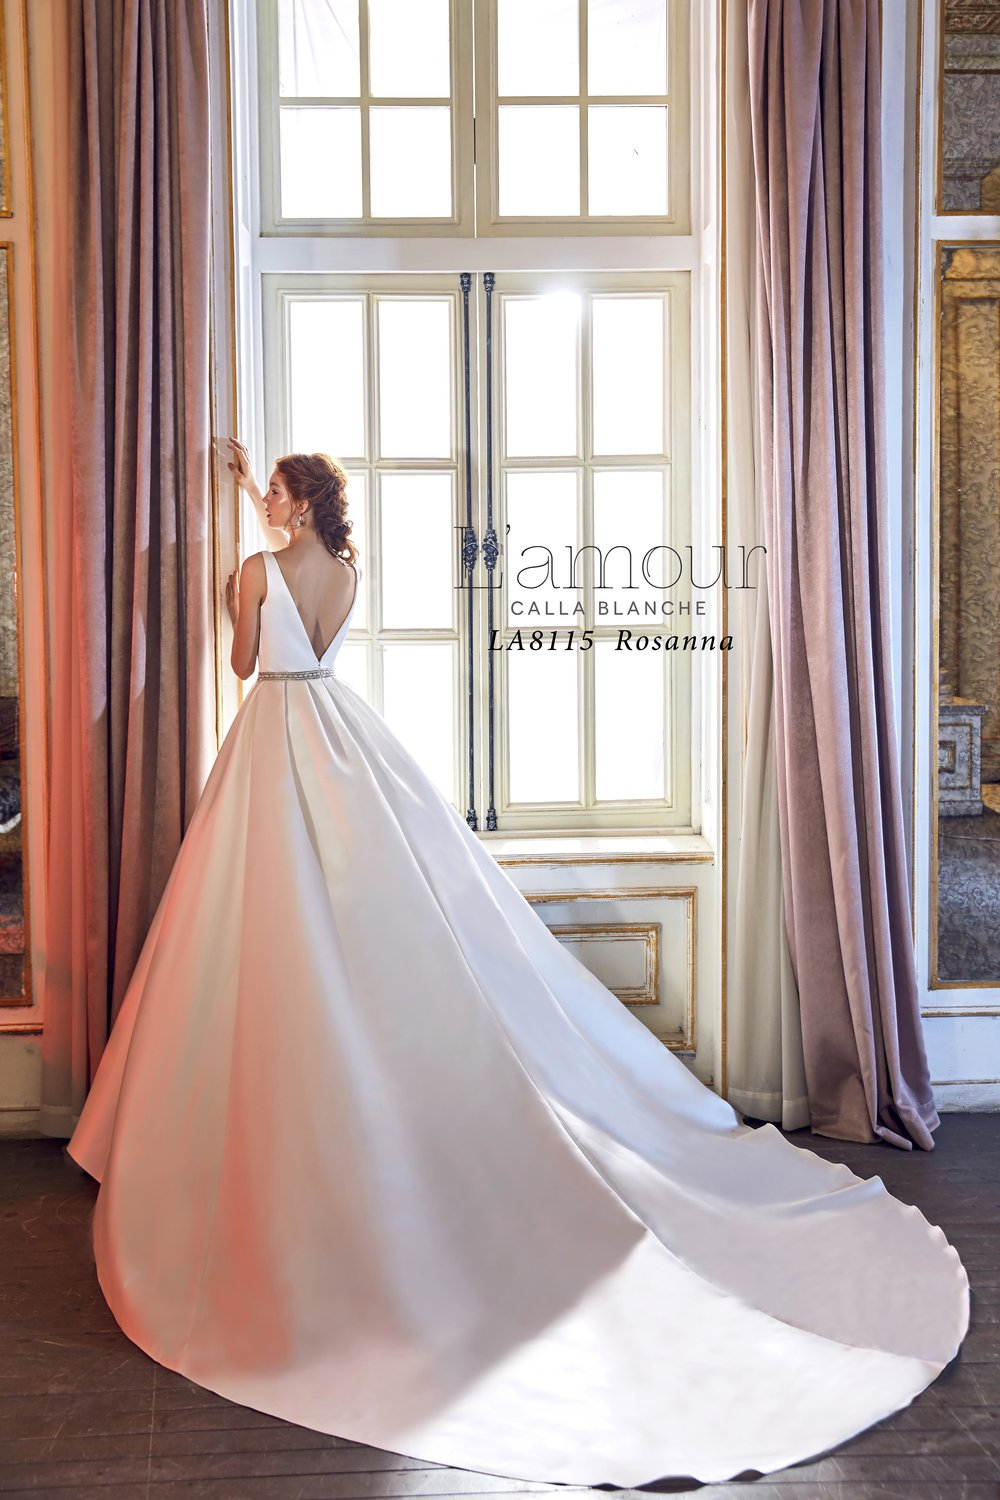 ivory-and-beau-bridal-boutique-lamour-by-calla-blanche-savannah-wedding-gowns-savannah-bridal-seperates-long-sleeved-wedding-gown-1.jpg